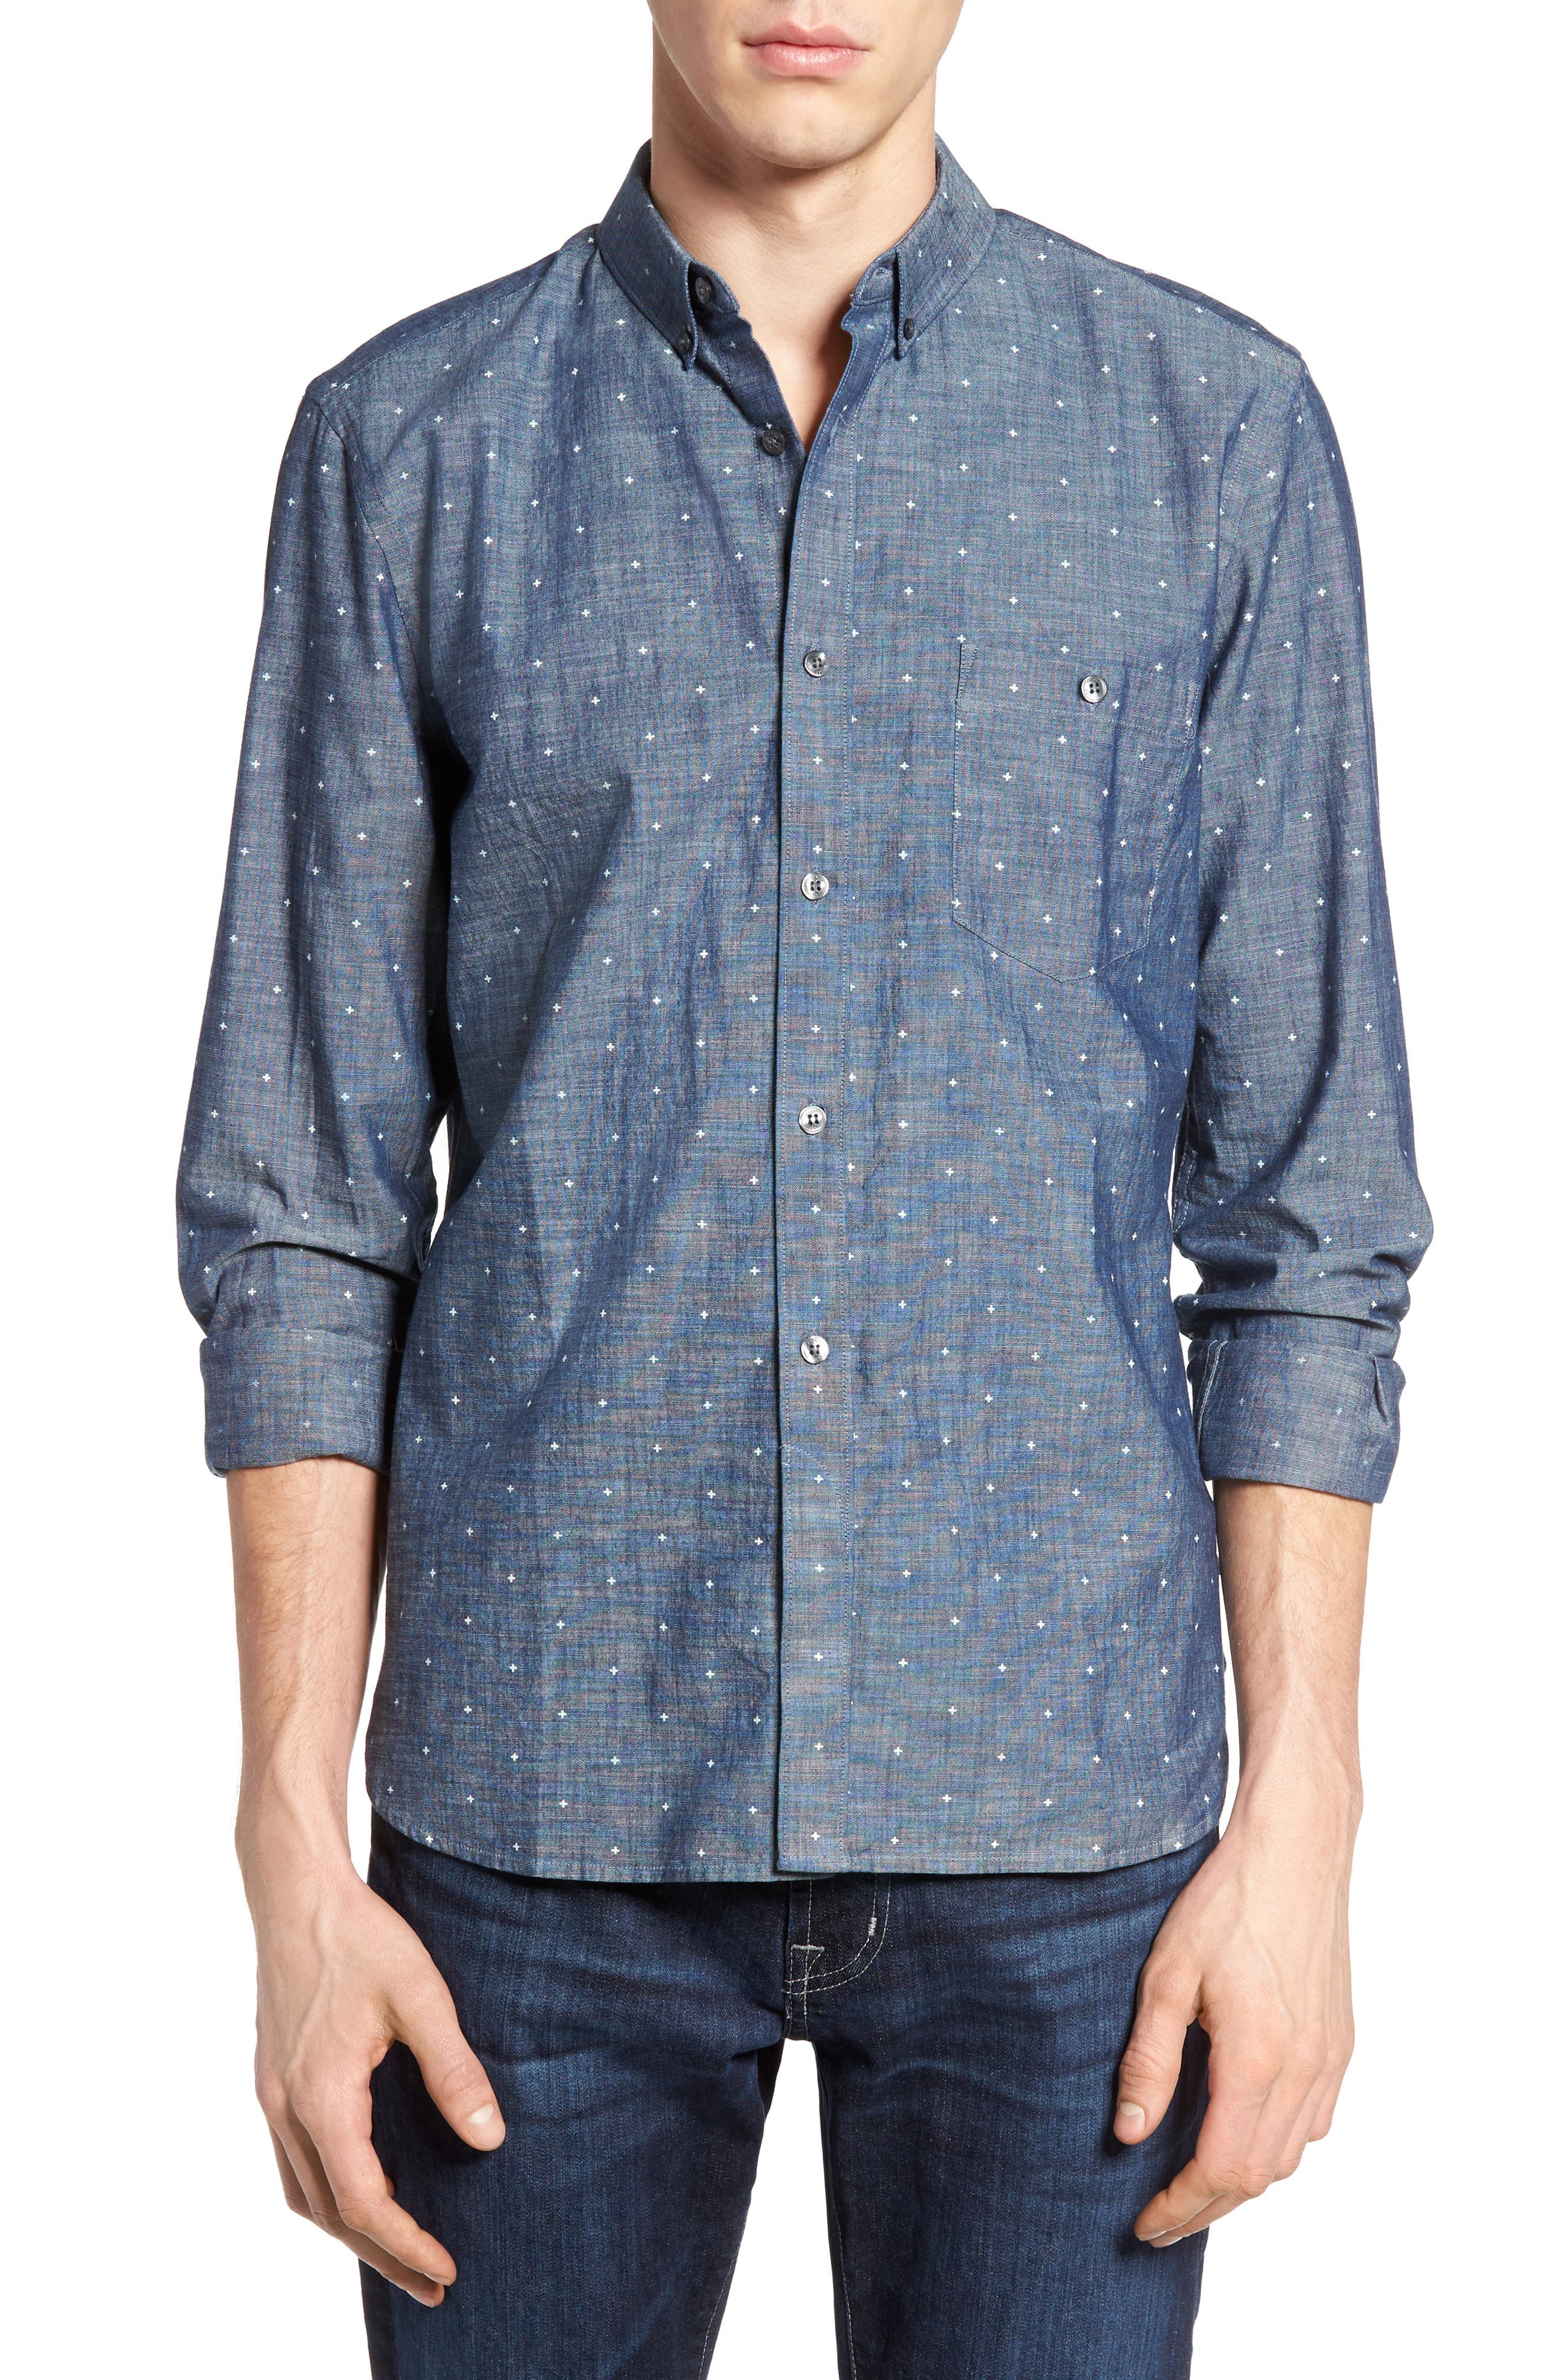 Alternate Image 1 Selected - French Connection Print Slub Chambray Shirt